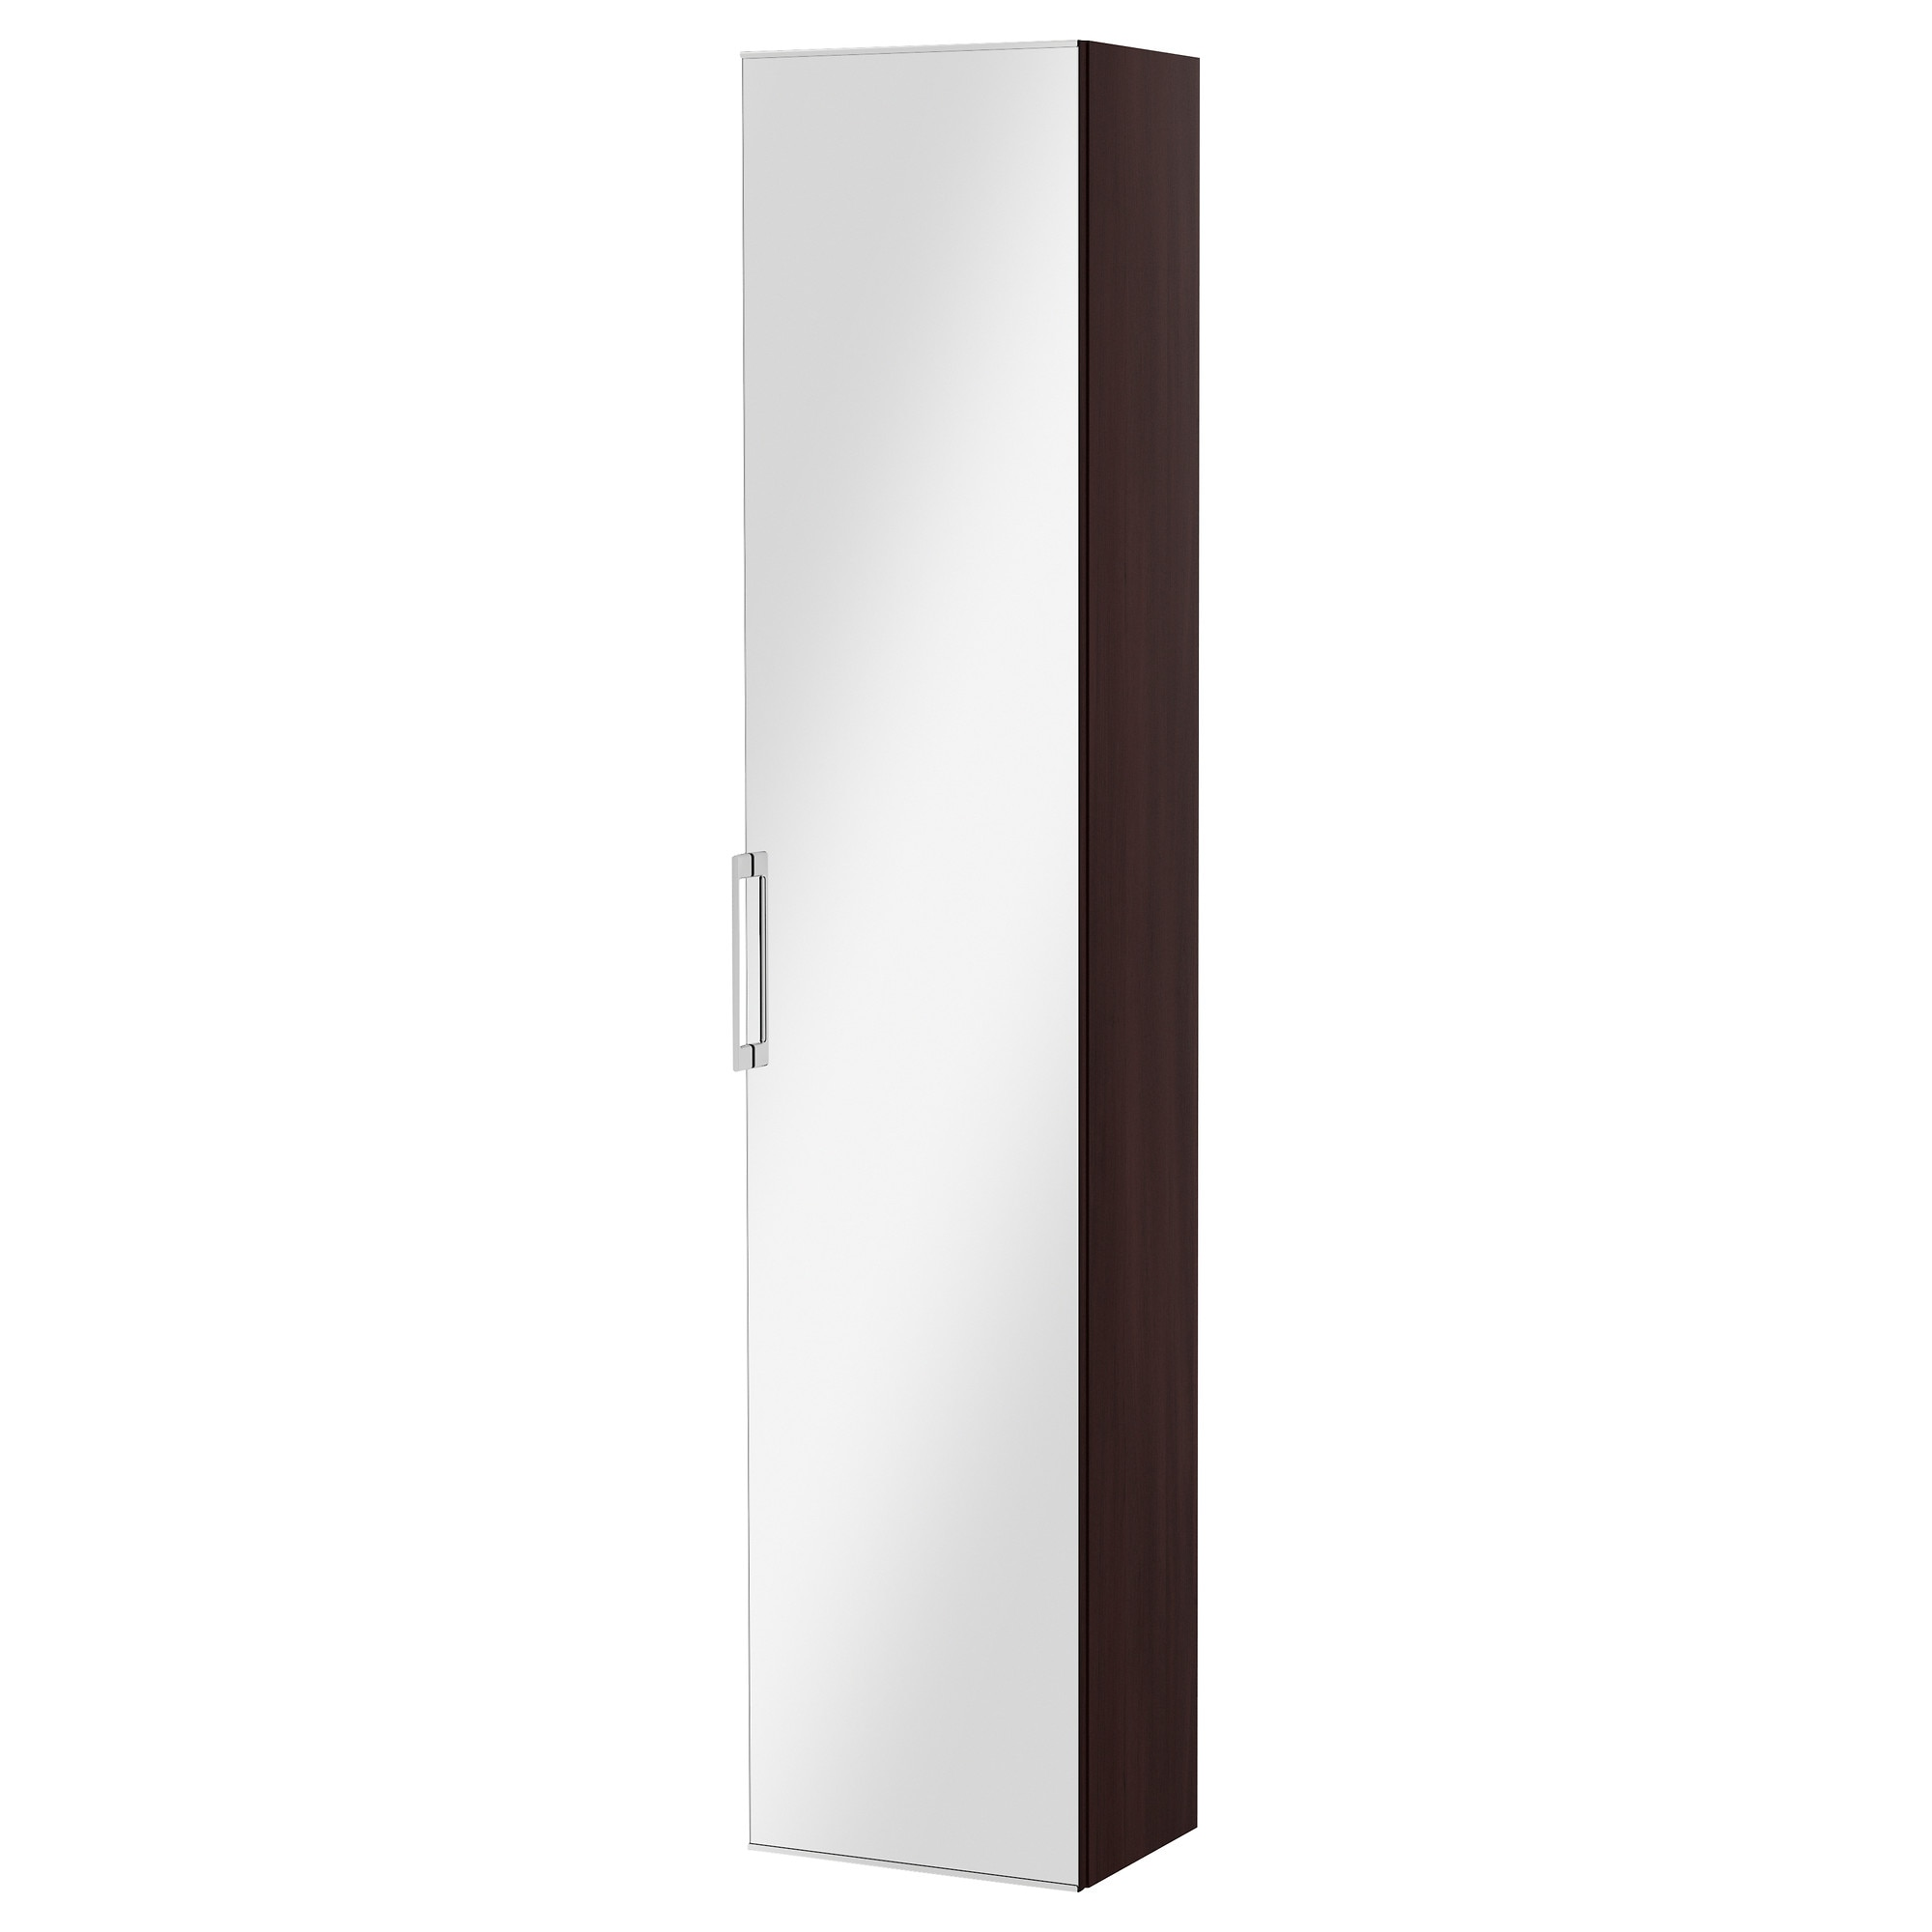 GODMORGON High Cabinet With Mirror Door Black Brown Width 15 3 4